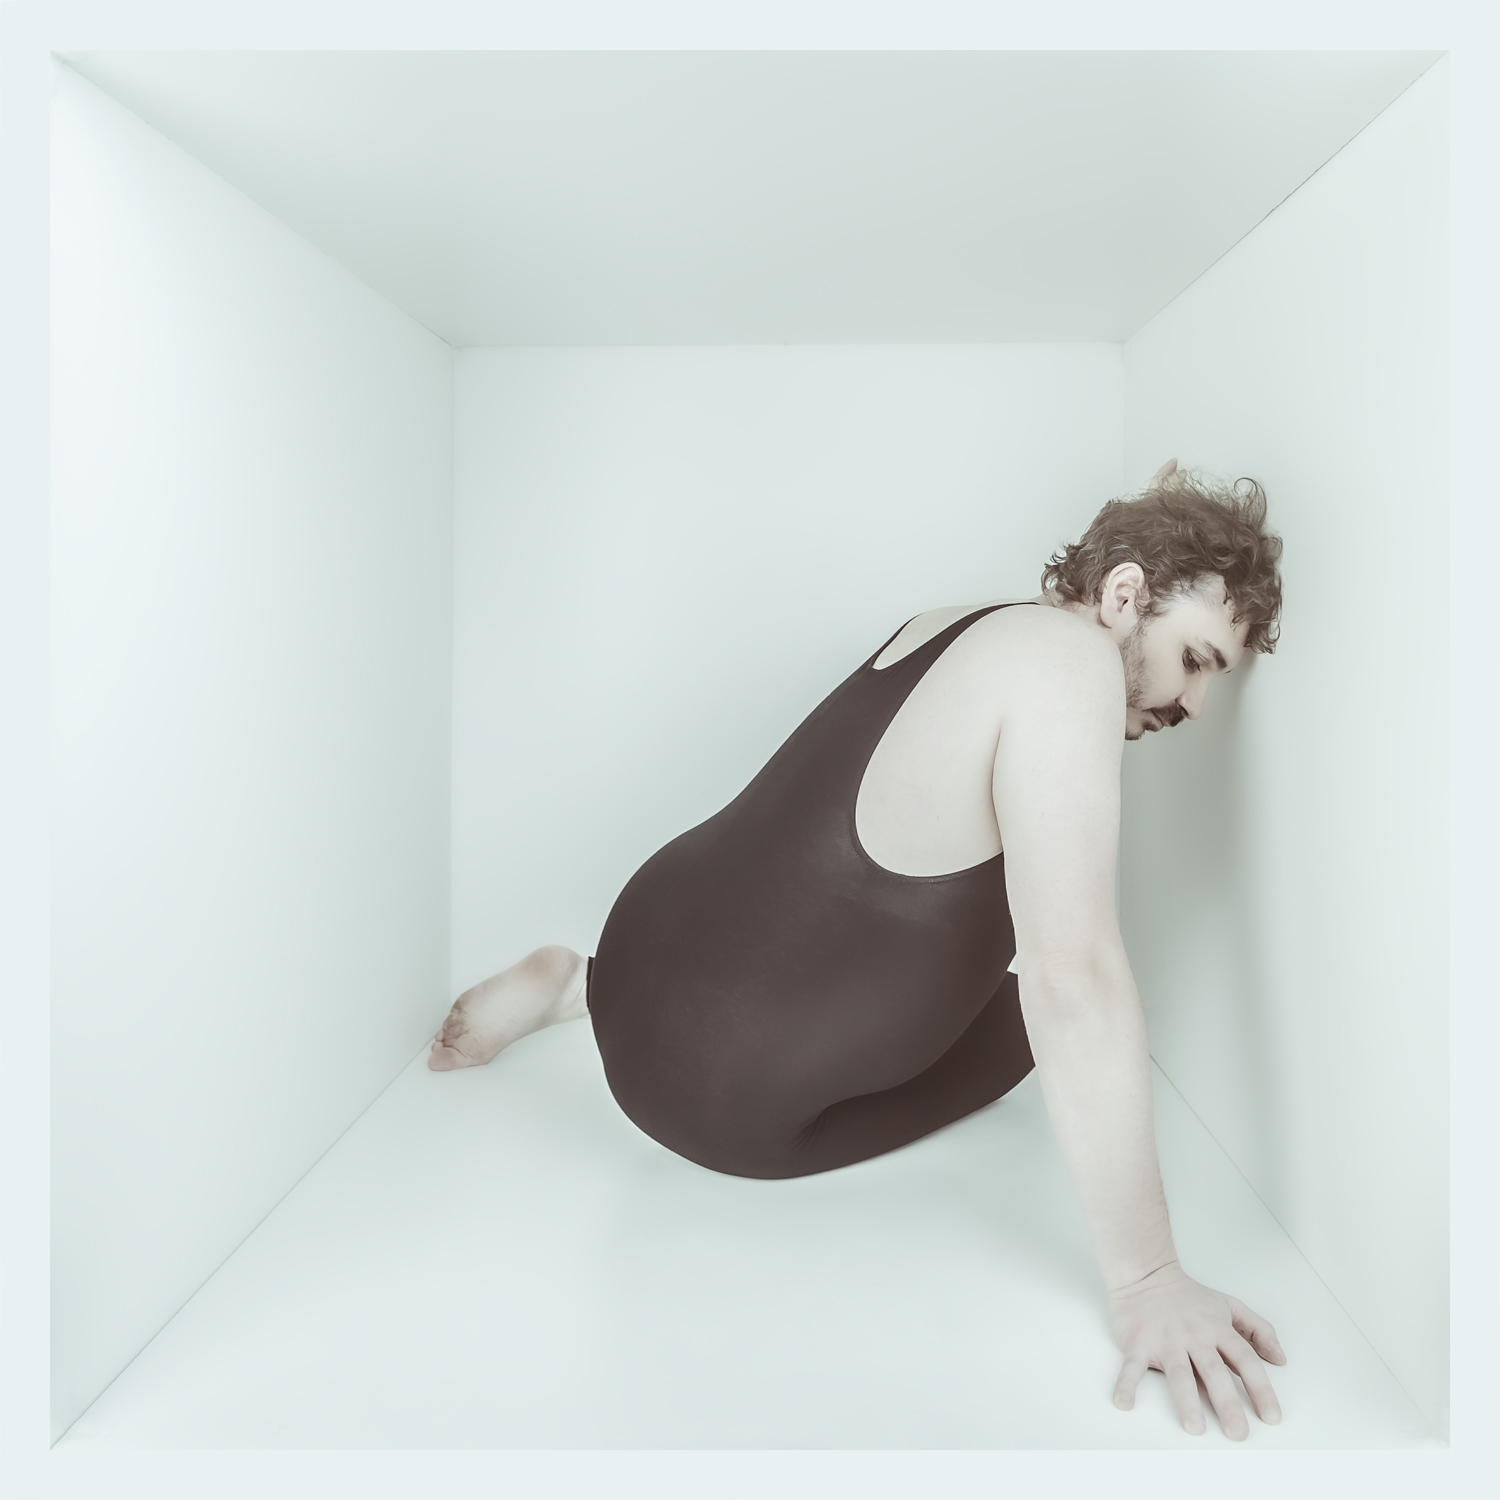 Hopelessness - Collection Into The Box by Idan Wizen